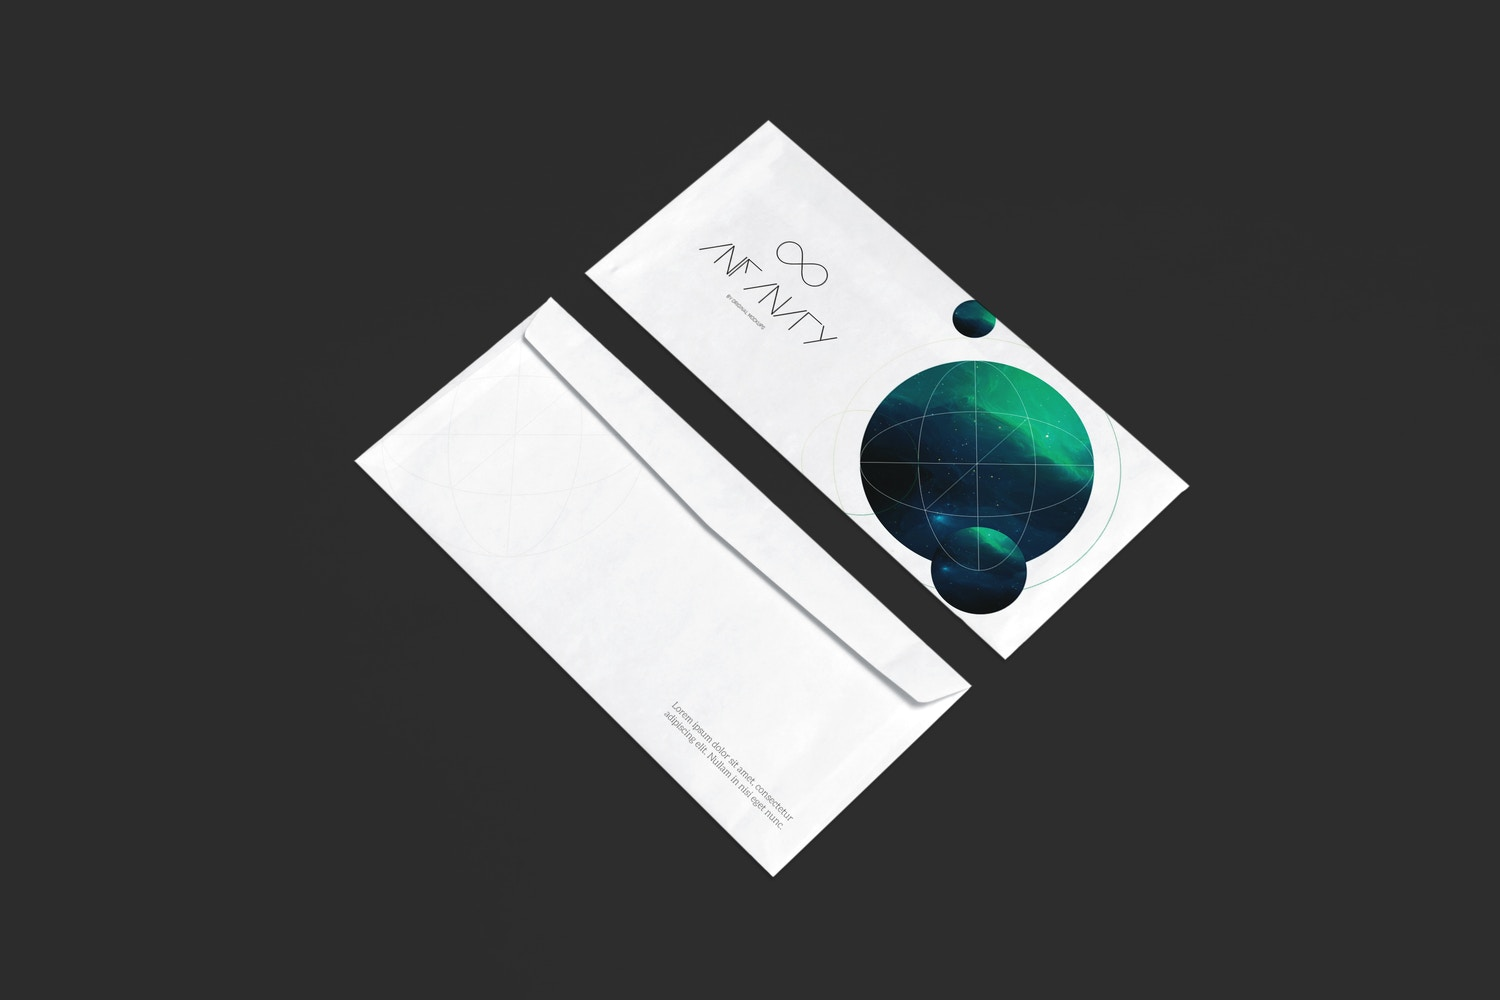 Envelope Mockup 1 by Original Mockups on Original Mockups